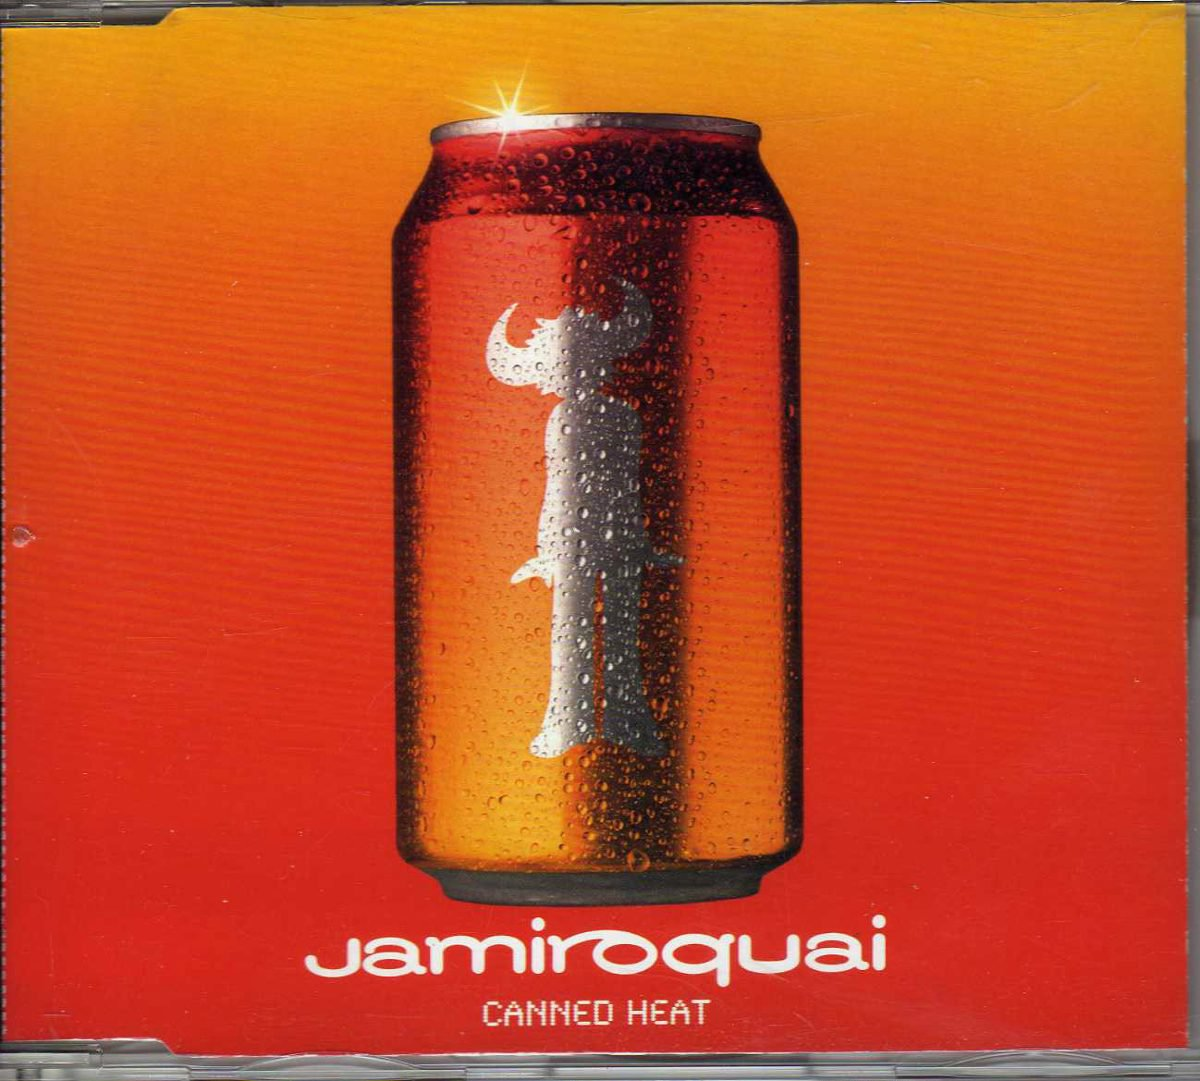 Canned Heat – Jamiroquai